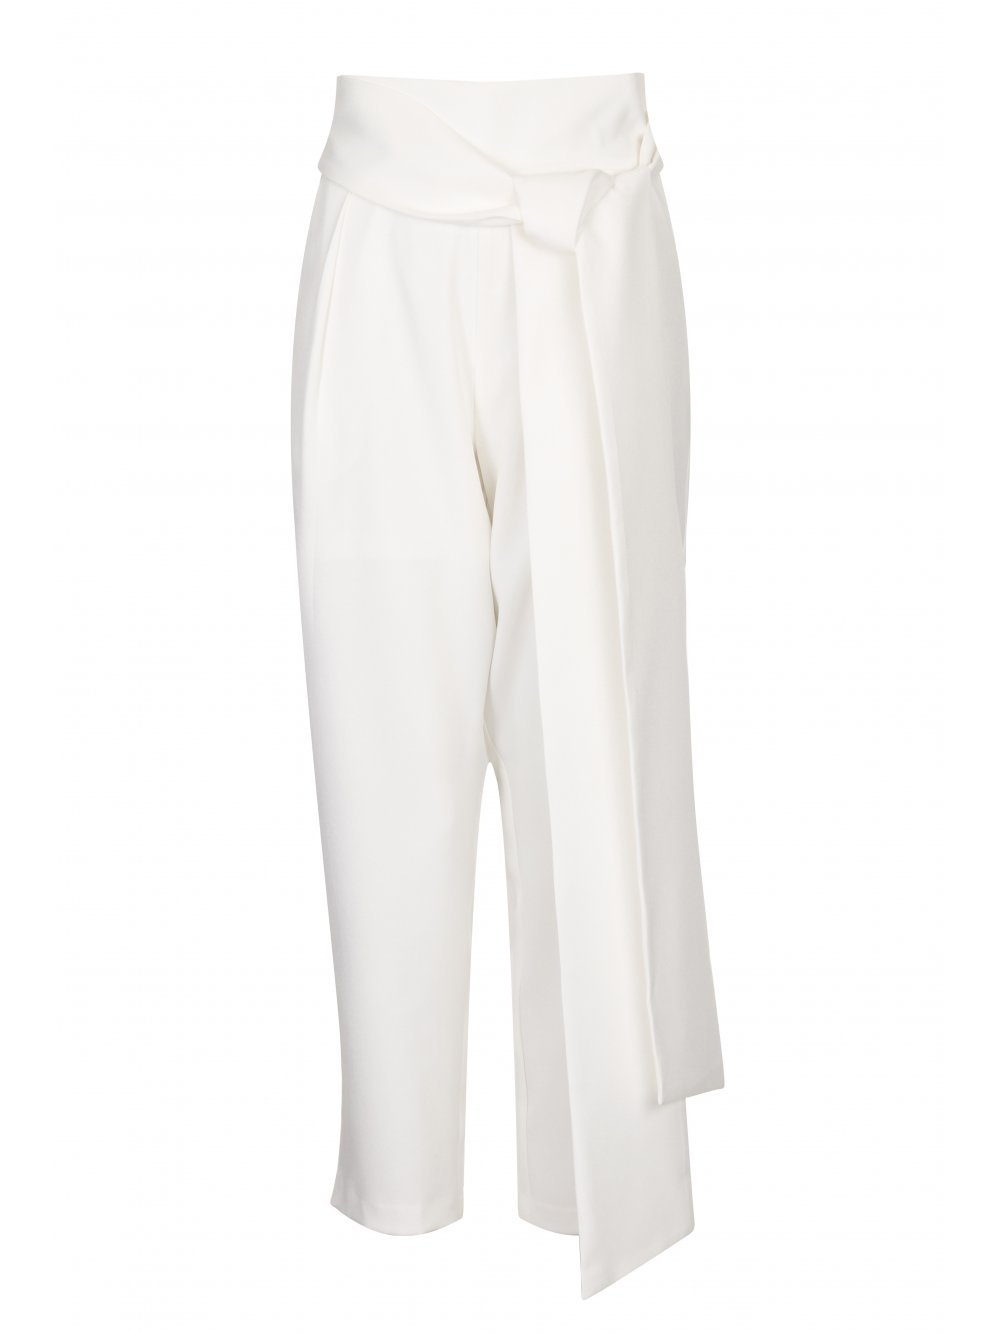 White Peg Leg Belted Trousers